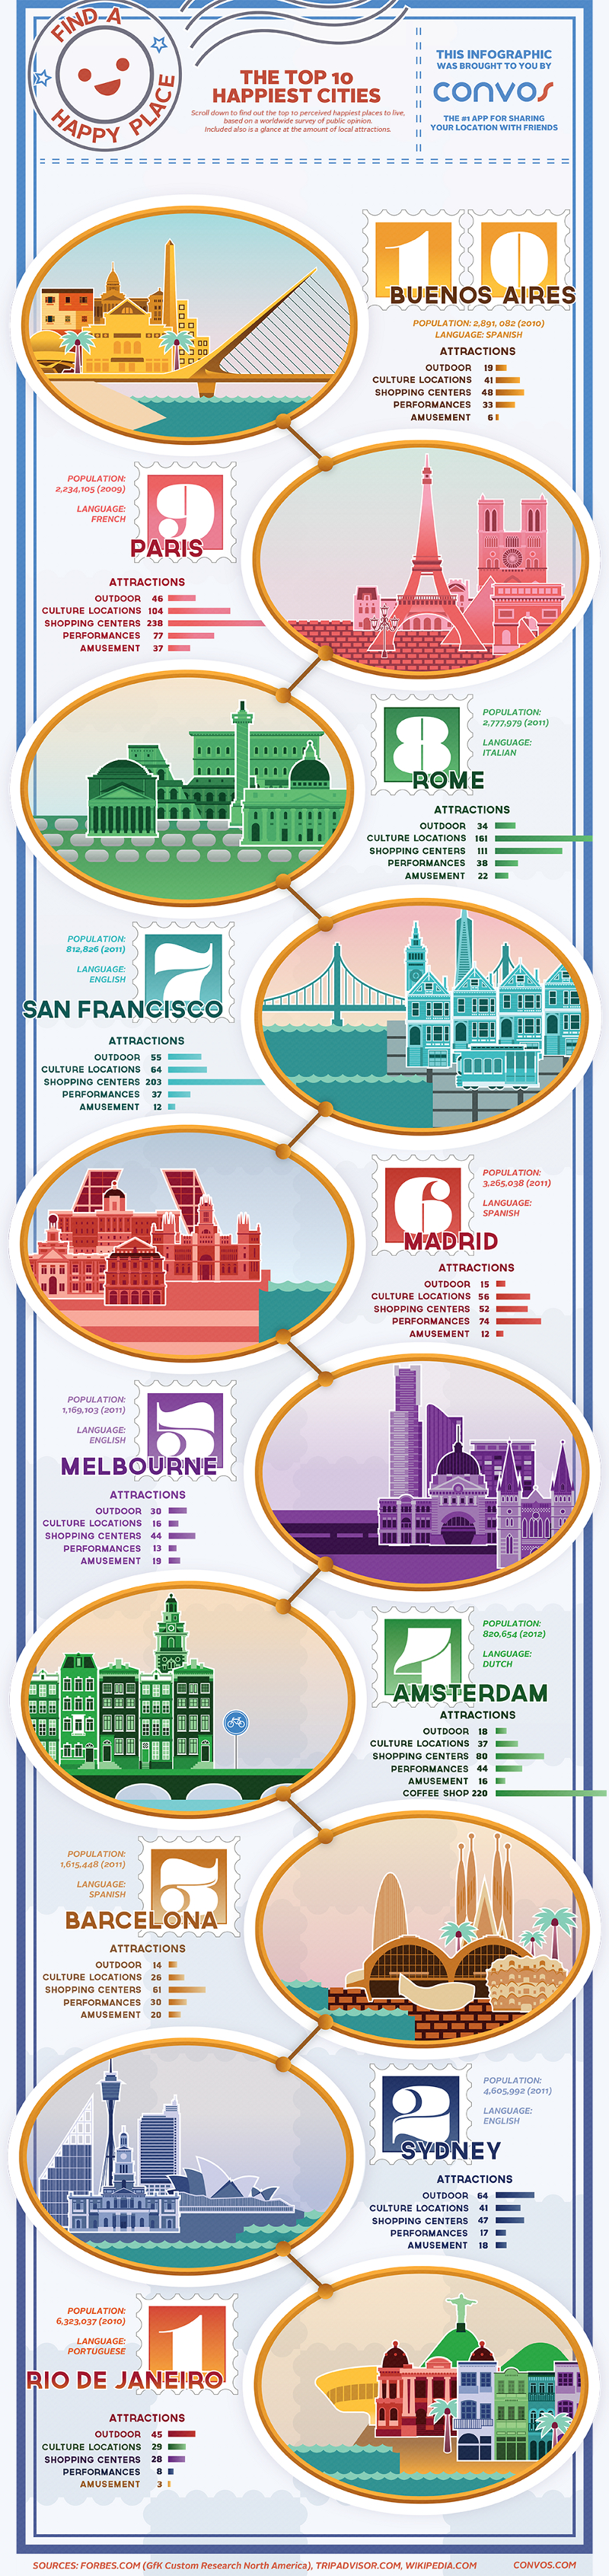 Happiest-Cities-in-the-World